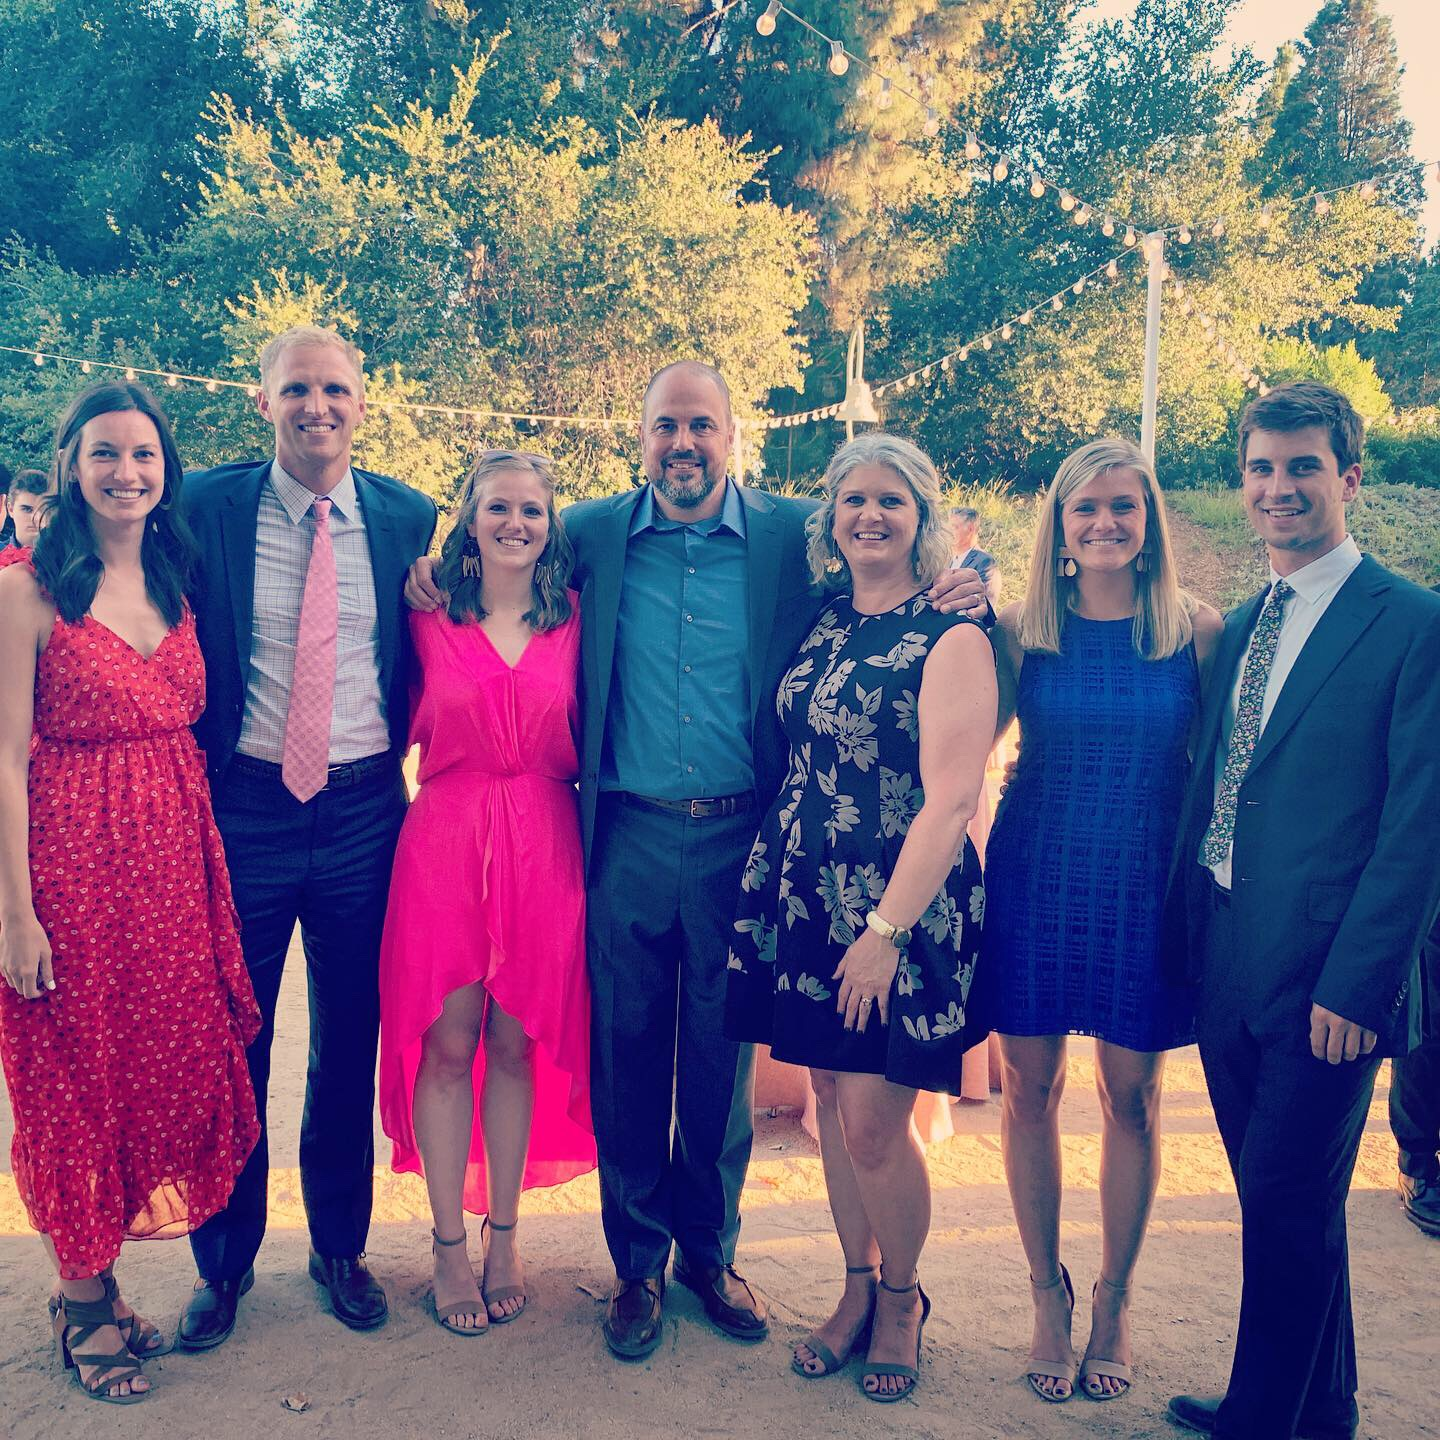 My family and me in Fullerton for a fun, family wedding